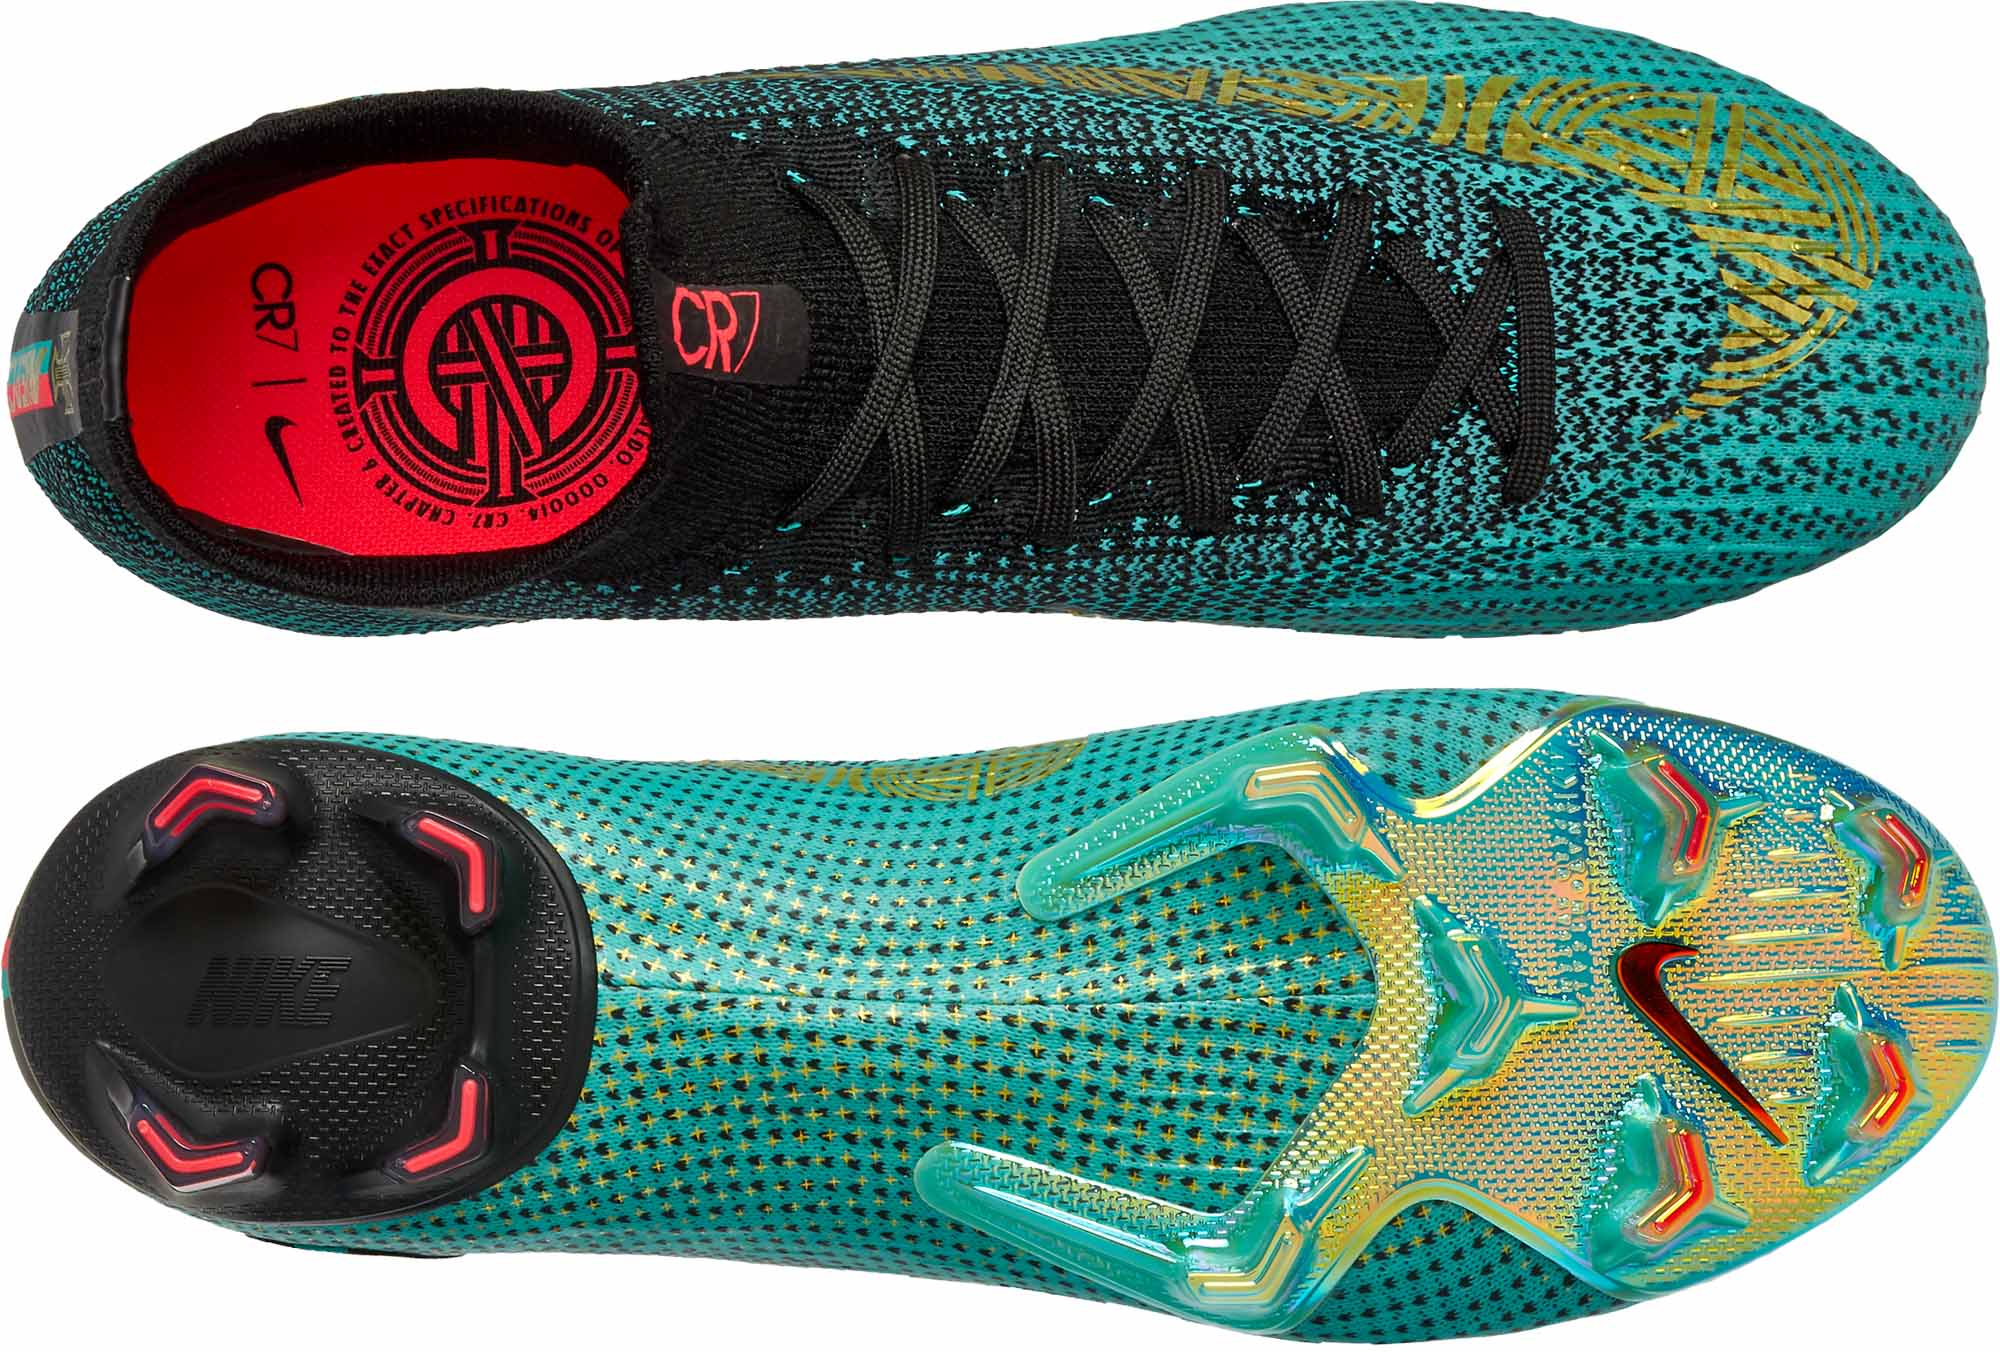 finest selection 1bd44 eccae Nike Mercurial Superfly 6 Elite FG - CR7 - Clear Jade ...